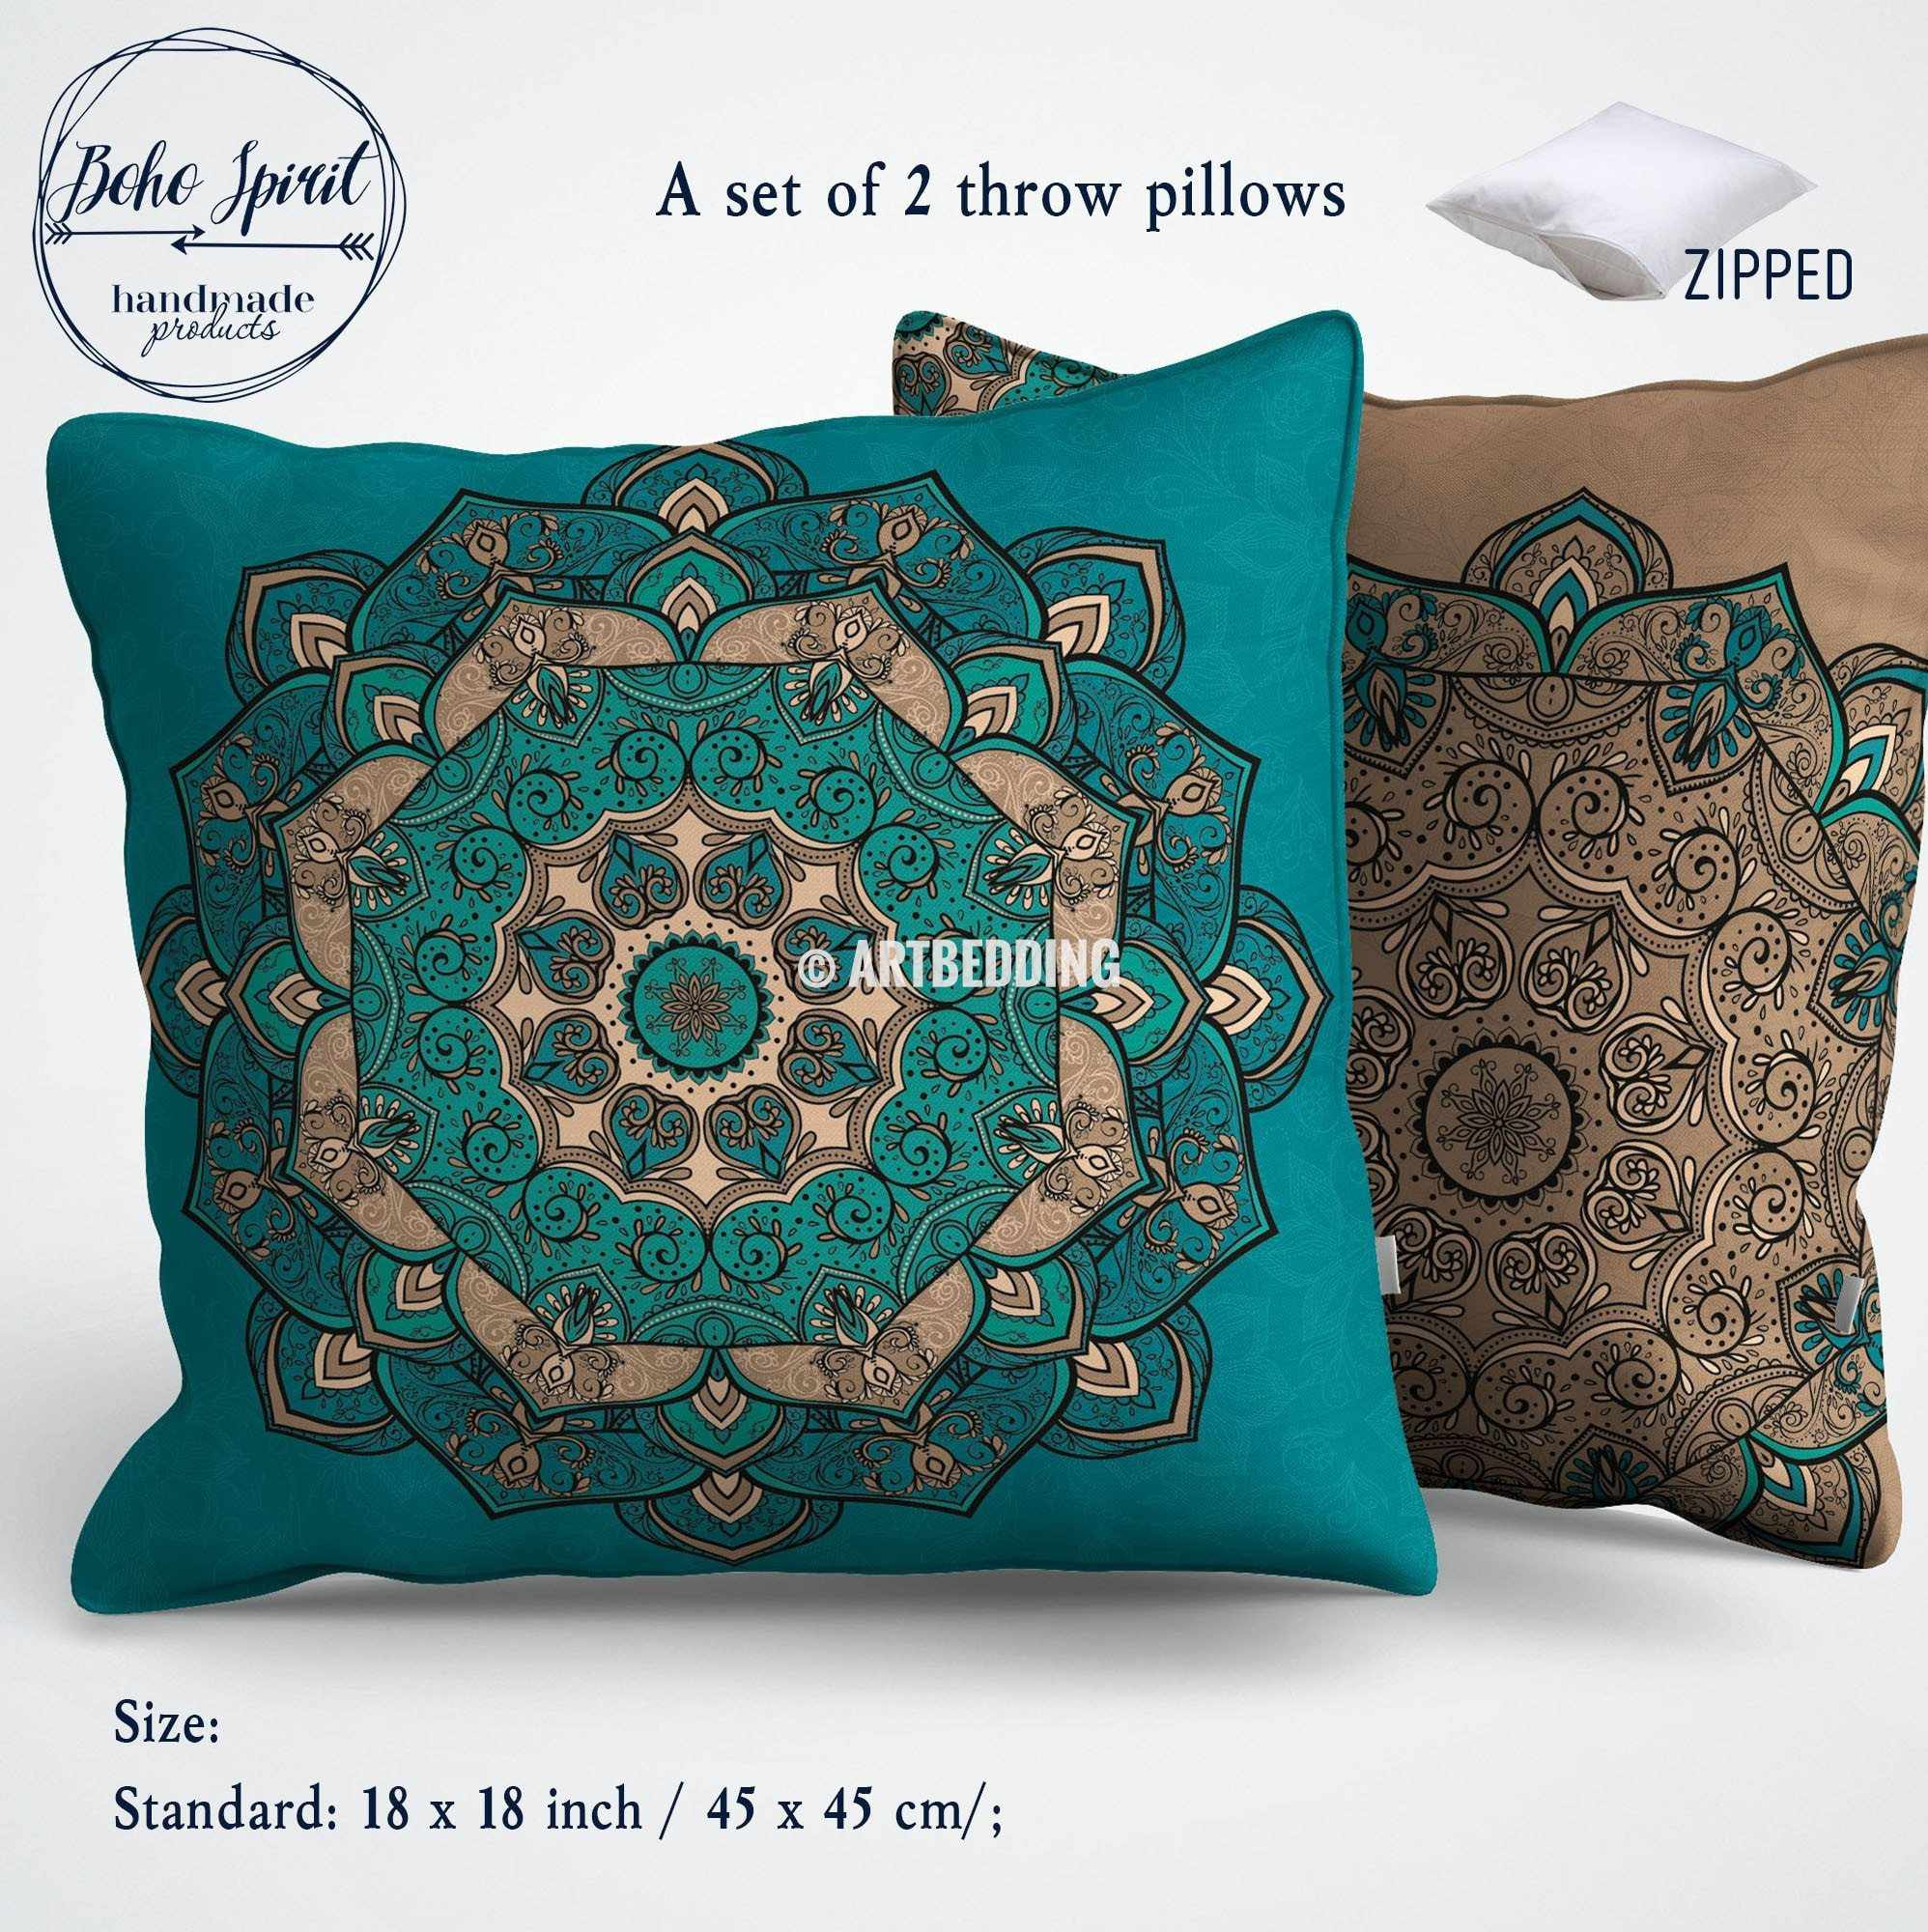 single utopia pillows steel pillow grey sets products throw alley alena or gray decorative embroidered